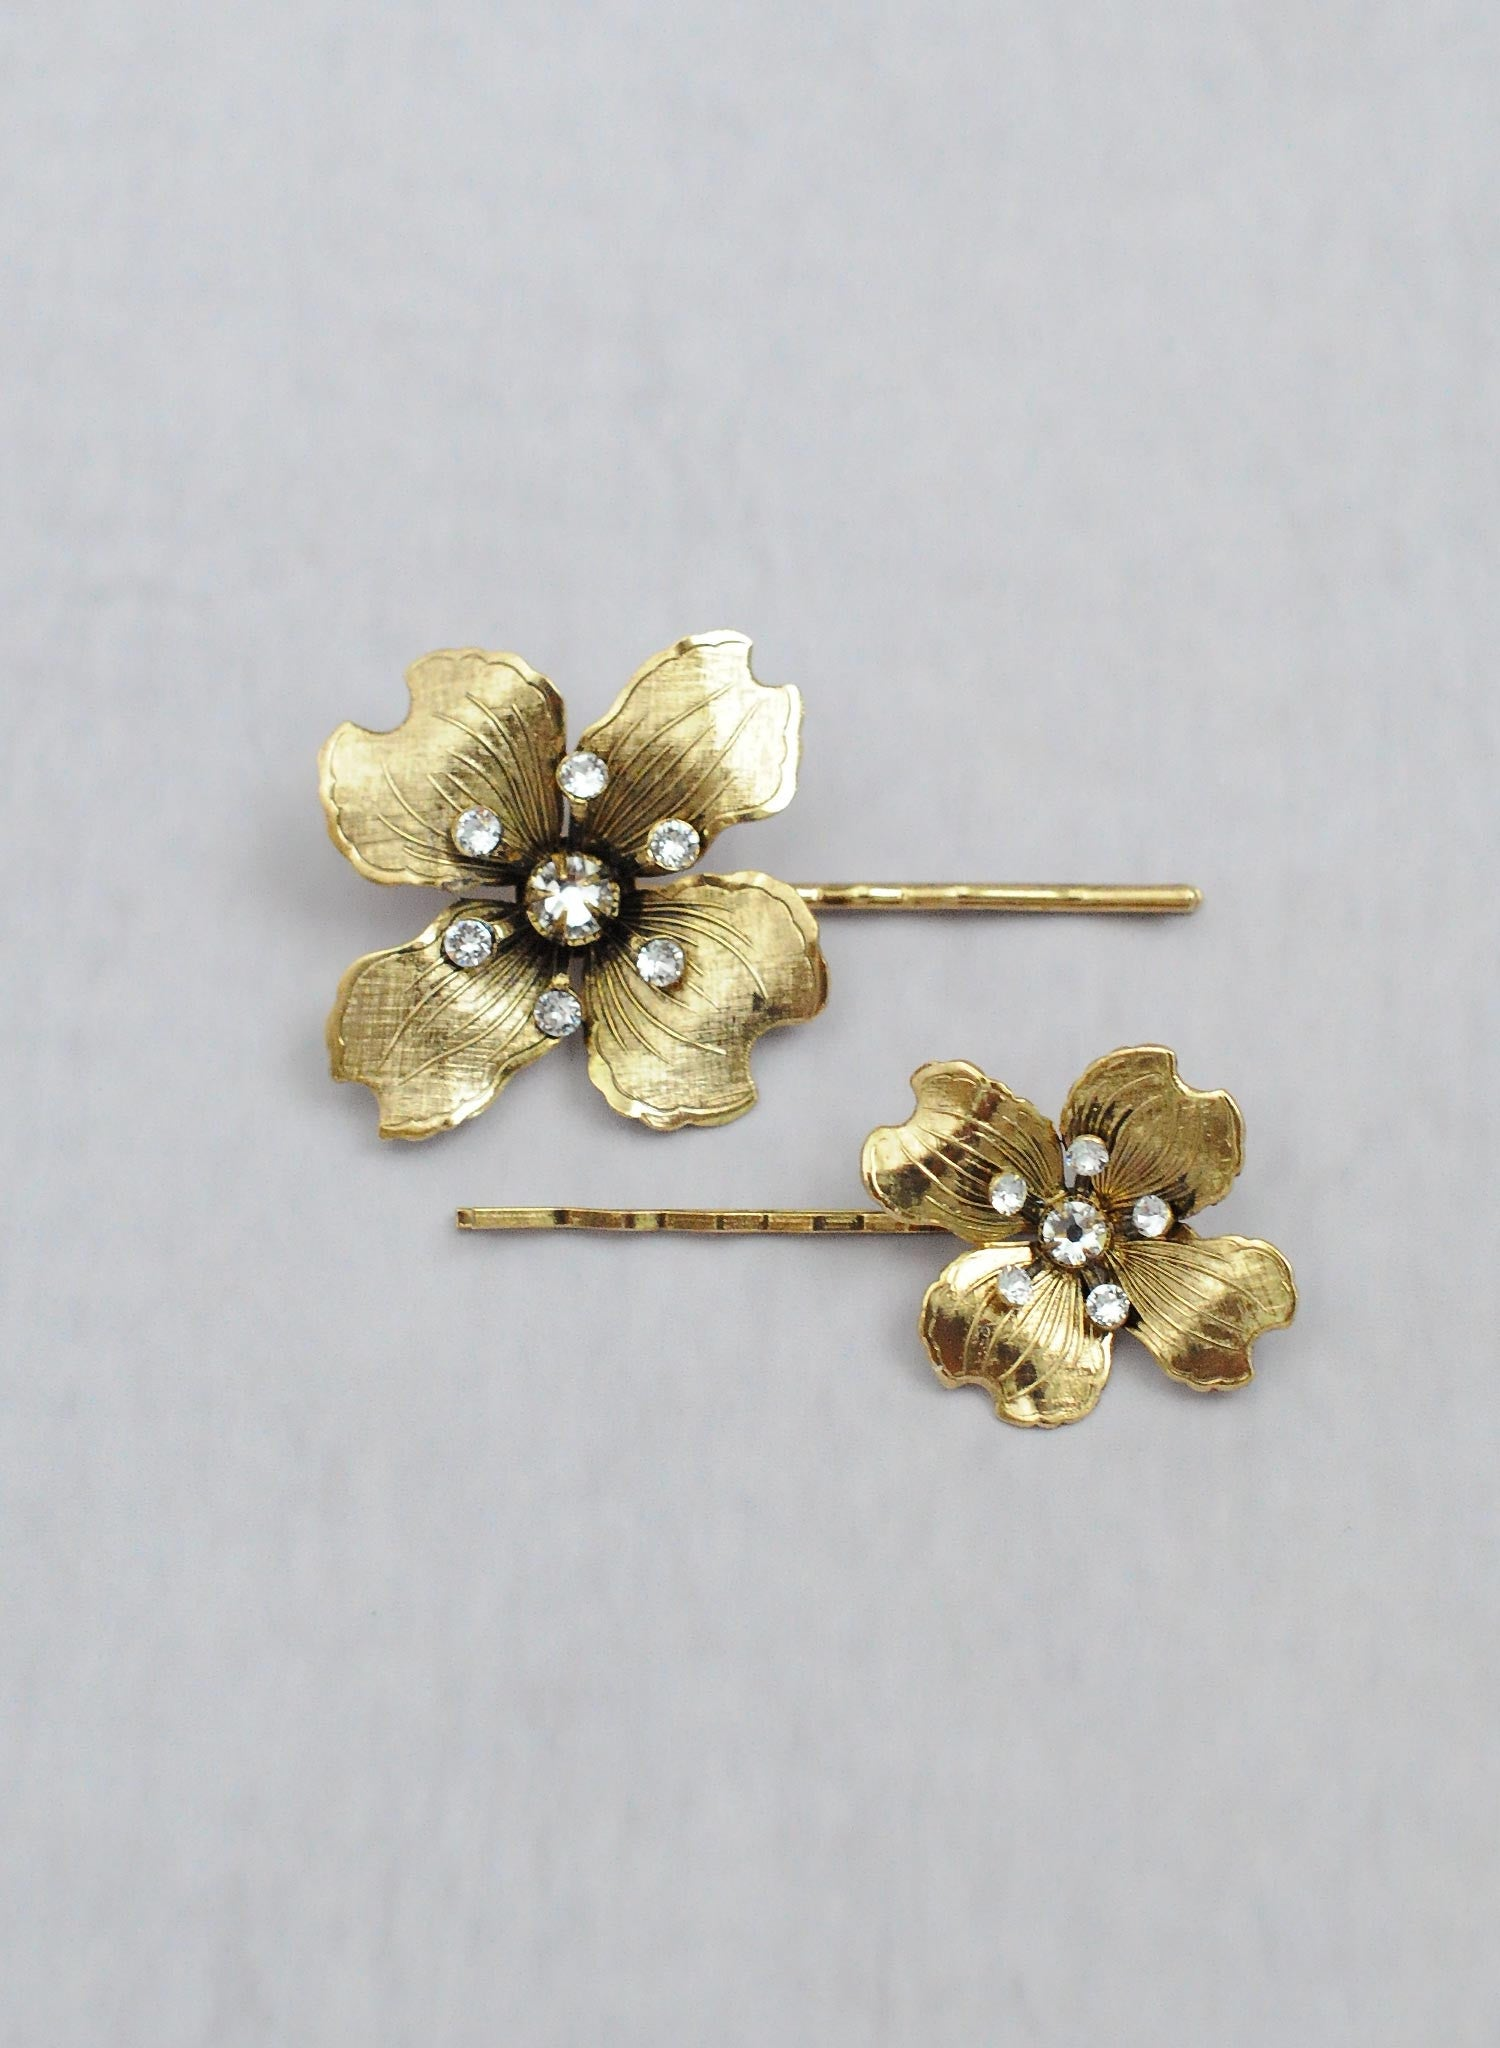 Dogwood flower hair pin set of 2 - Style #659